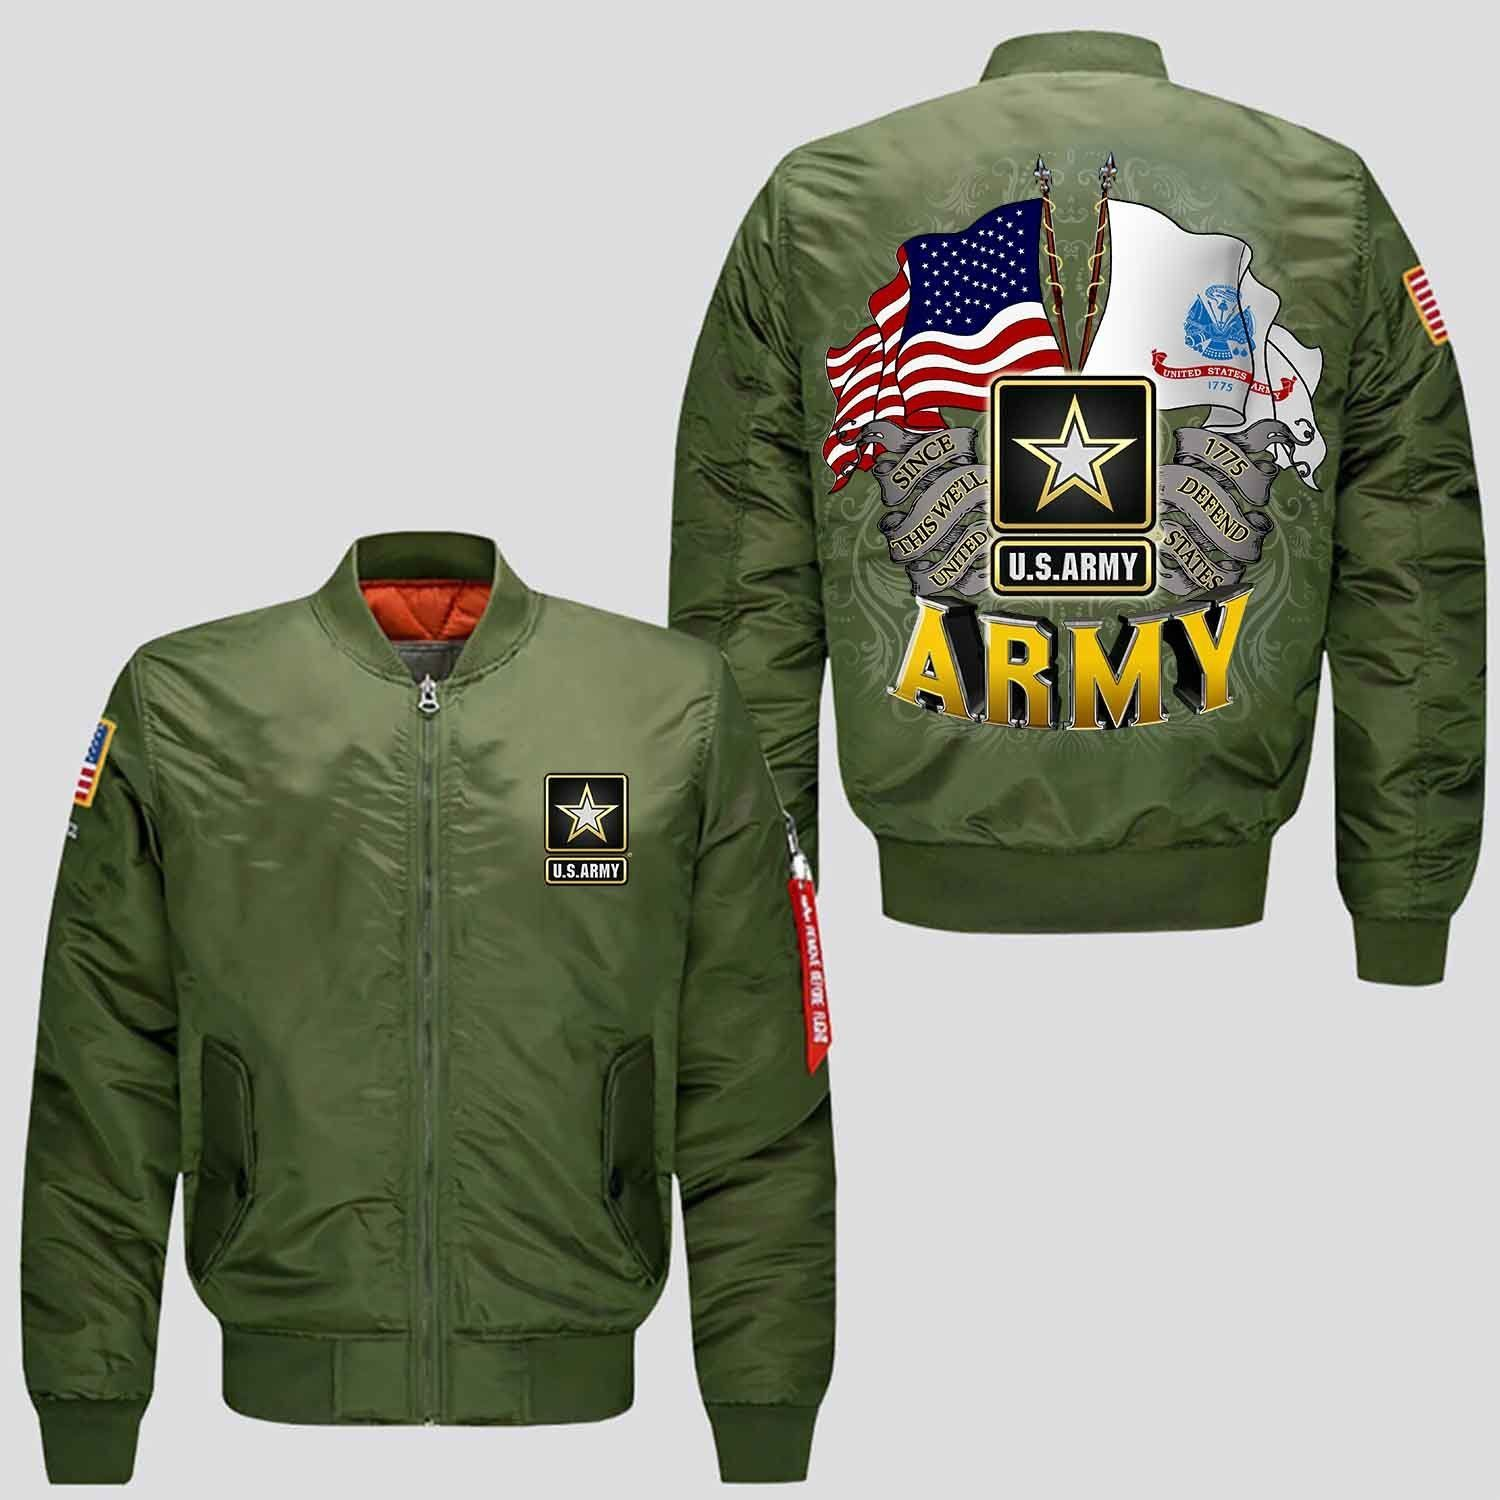 U S Army Since 1775 This We Ll Defend United States V2 0 Over Print Jacket Familyloves Com Us Army Clothing Bomber Jacket Jackets [ 1500 x 1500 Pixel ]